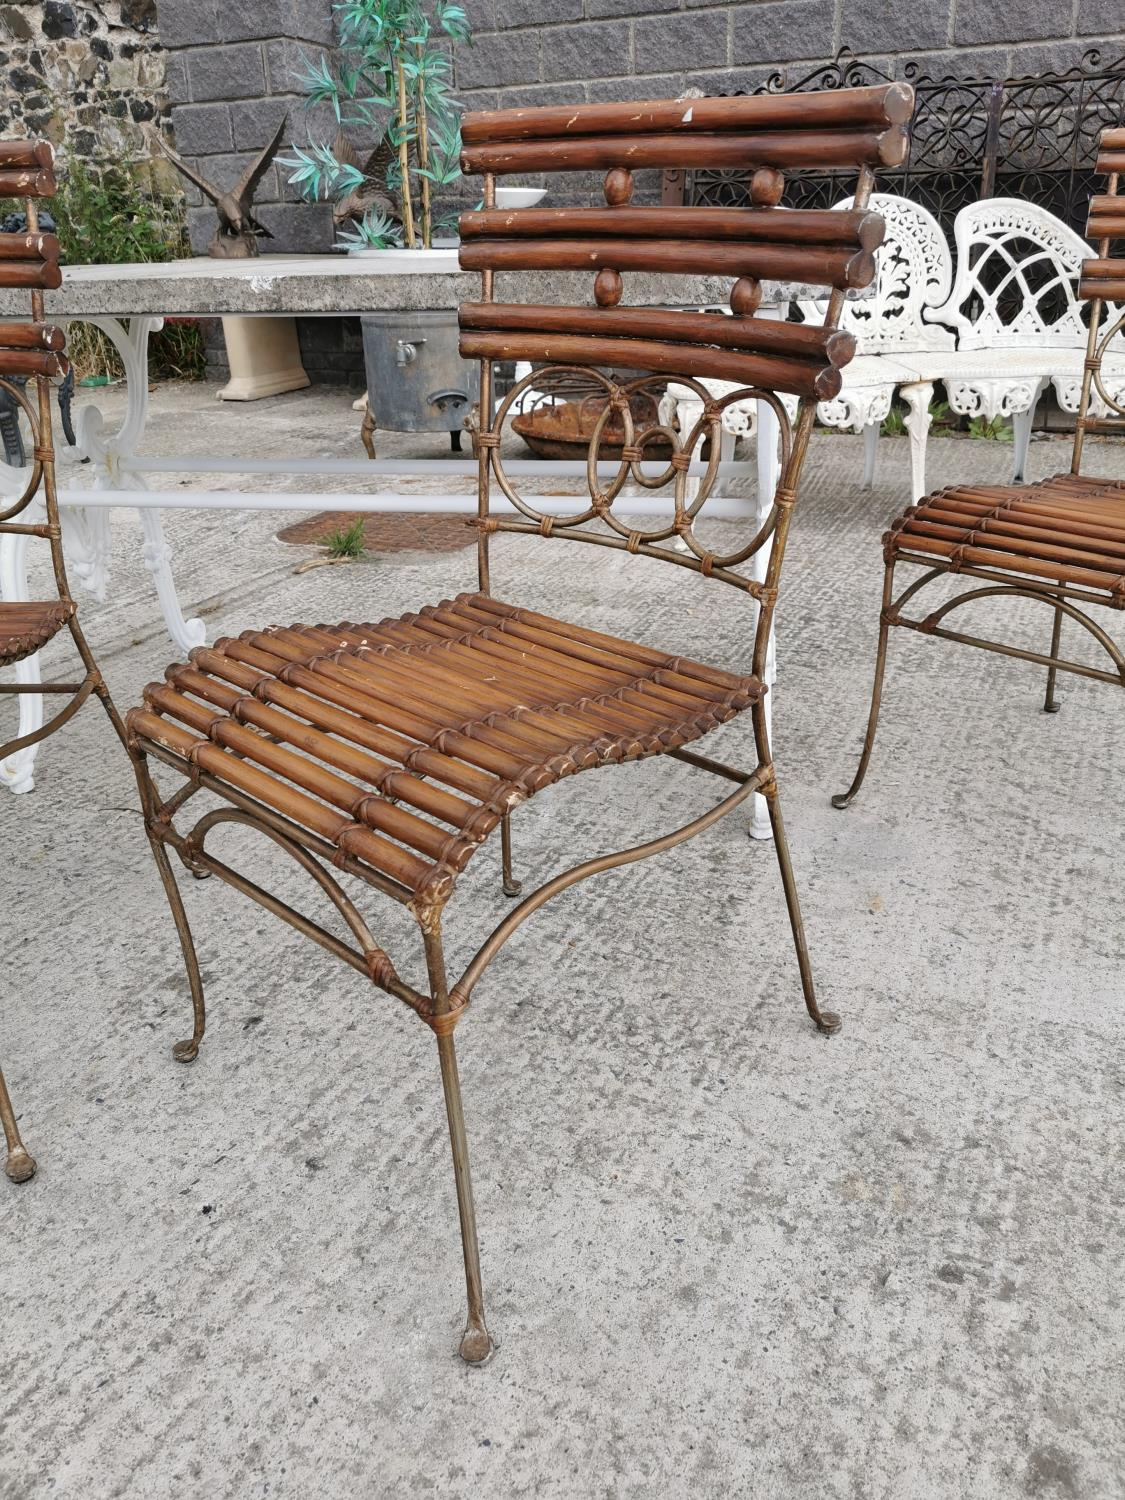 Set of four wrought iron and bamboo garden chairs. - Image 2 of 3